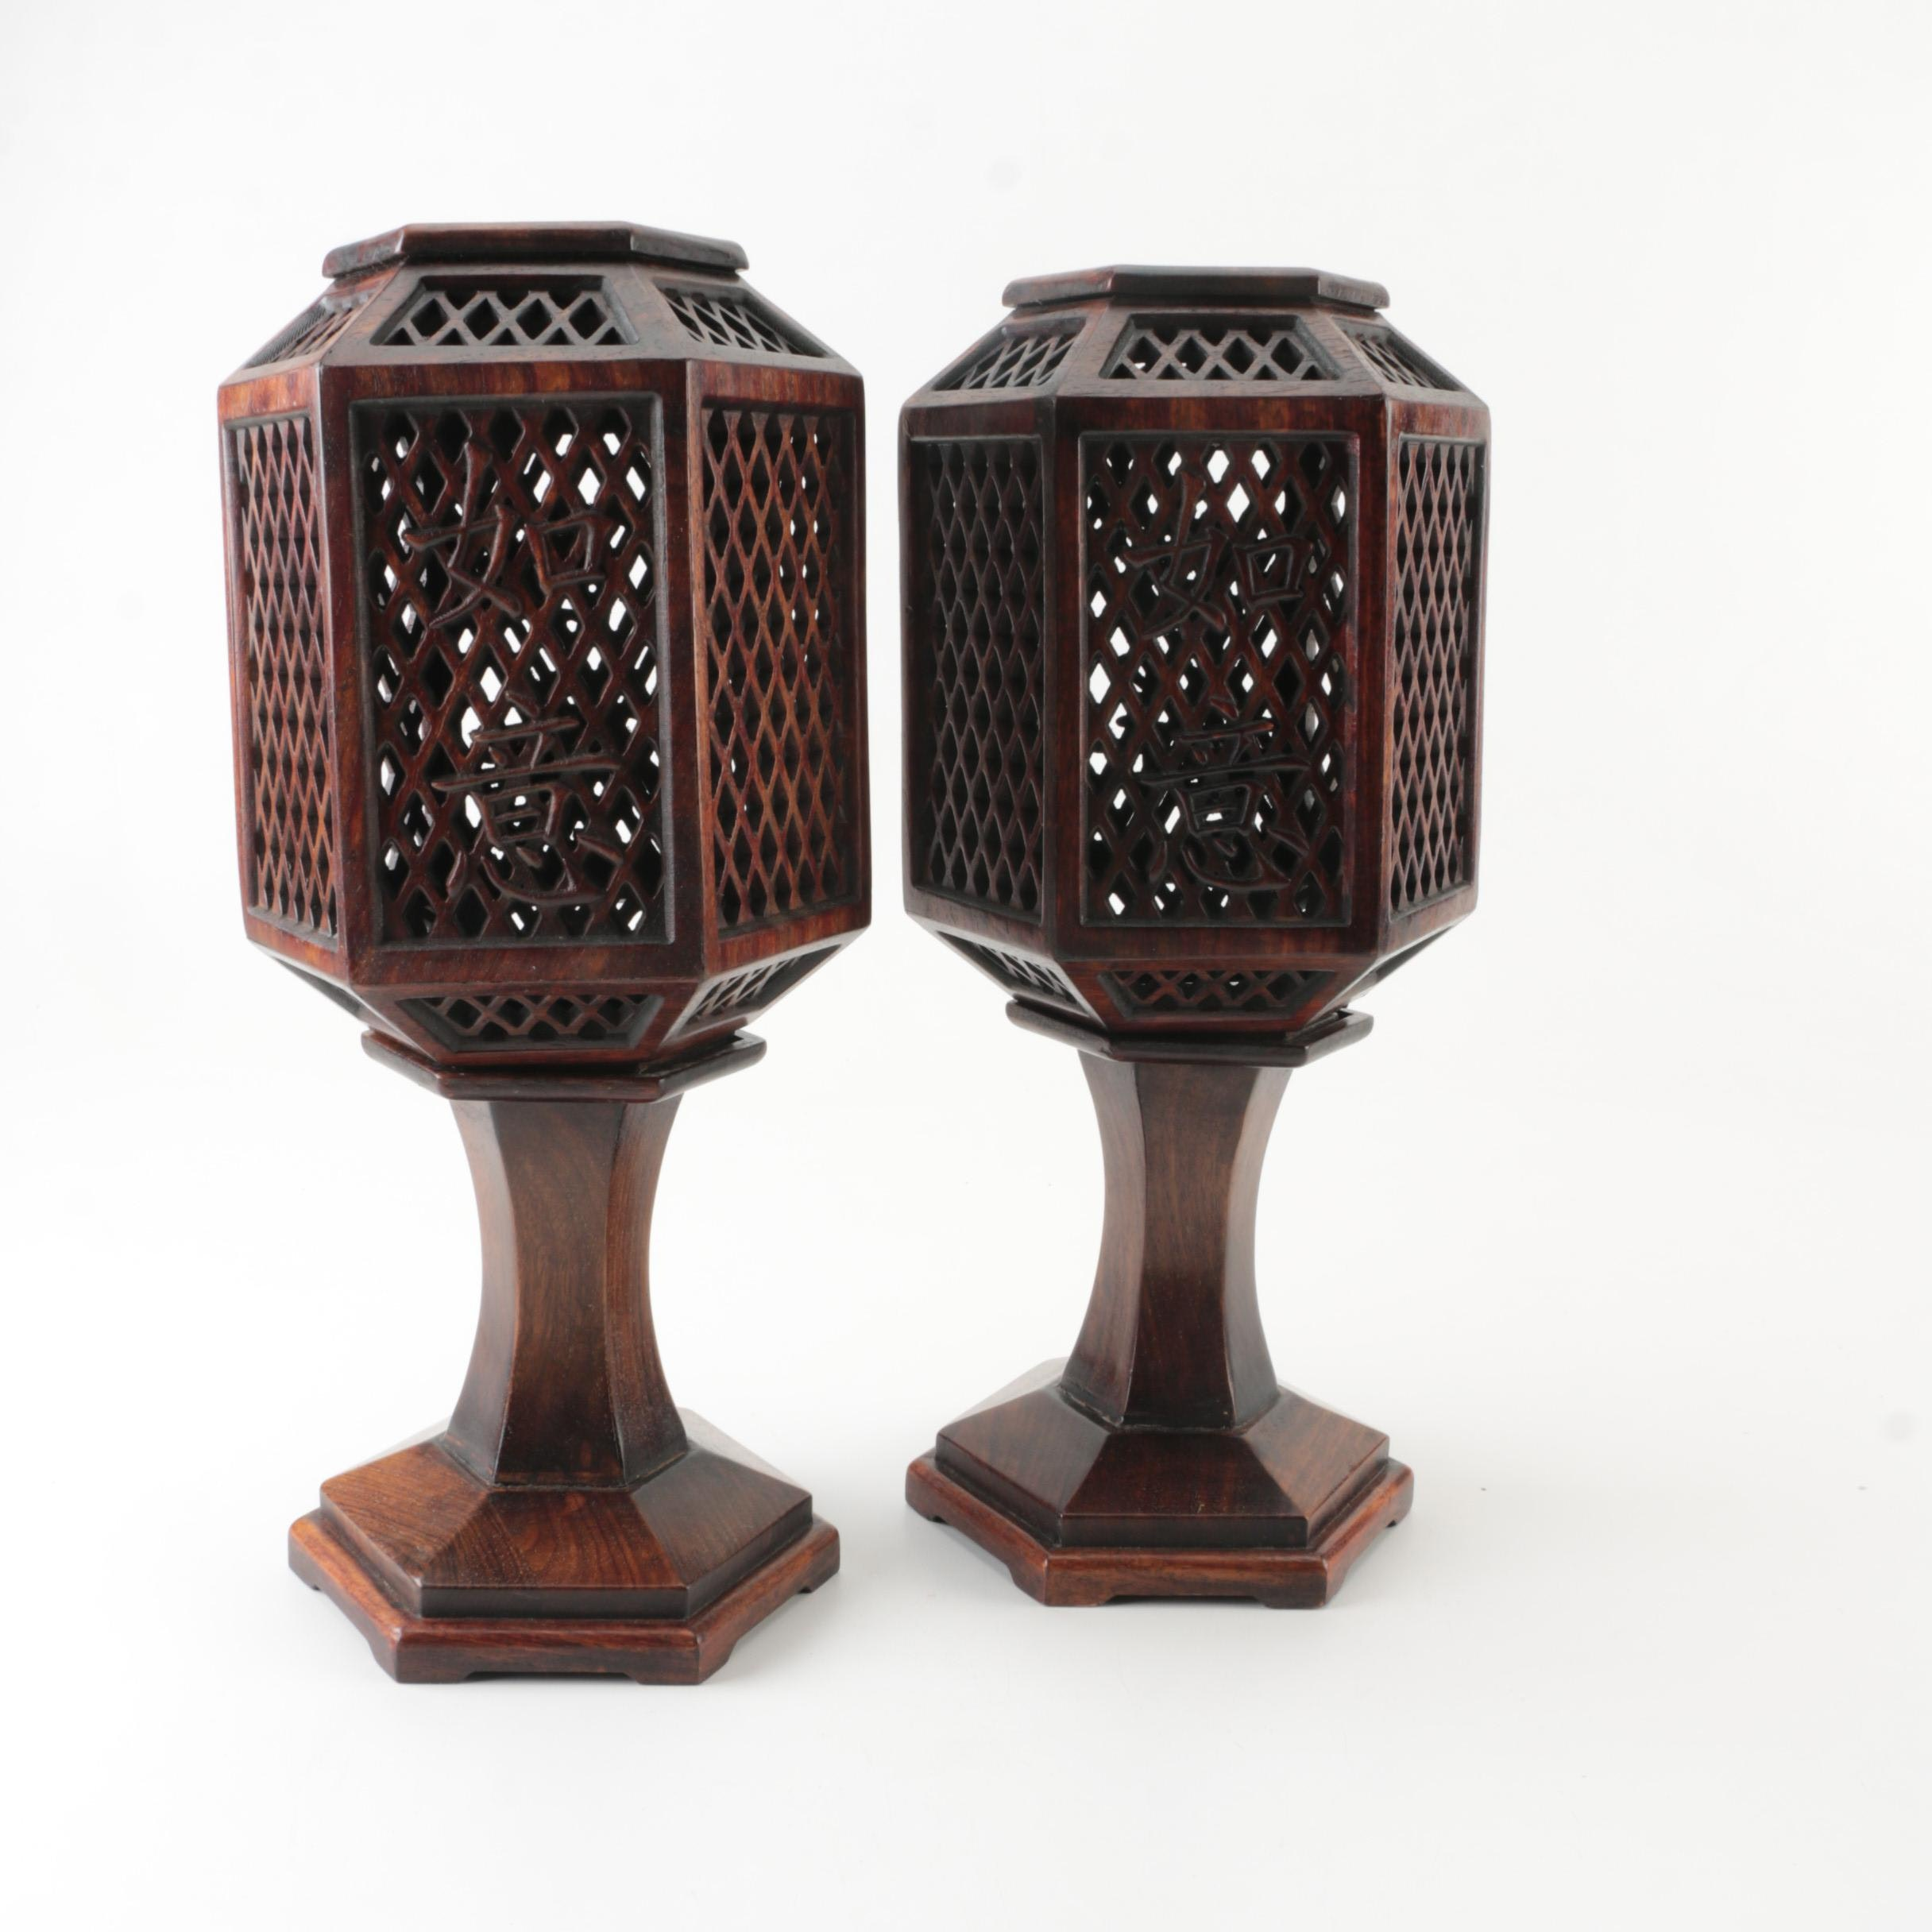 Chinese Wooden Lantern Candle Holders